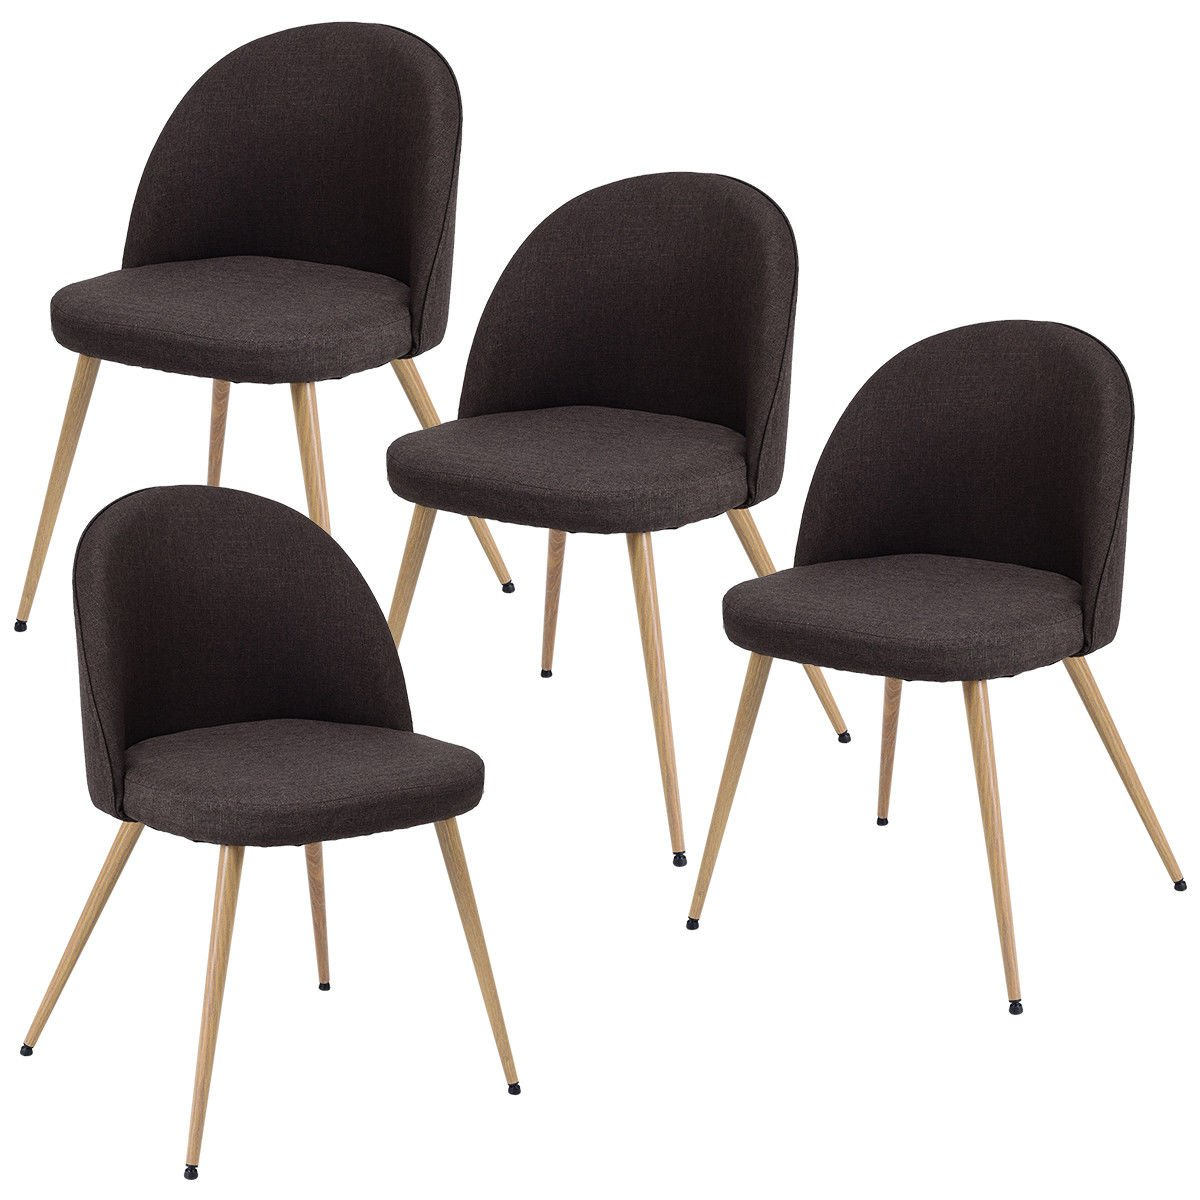 Fabric Cushion Seat Accent Arm Chair Dining Chair Metal Leg Living Room Set of 4